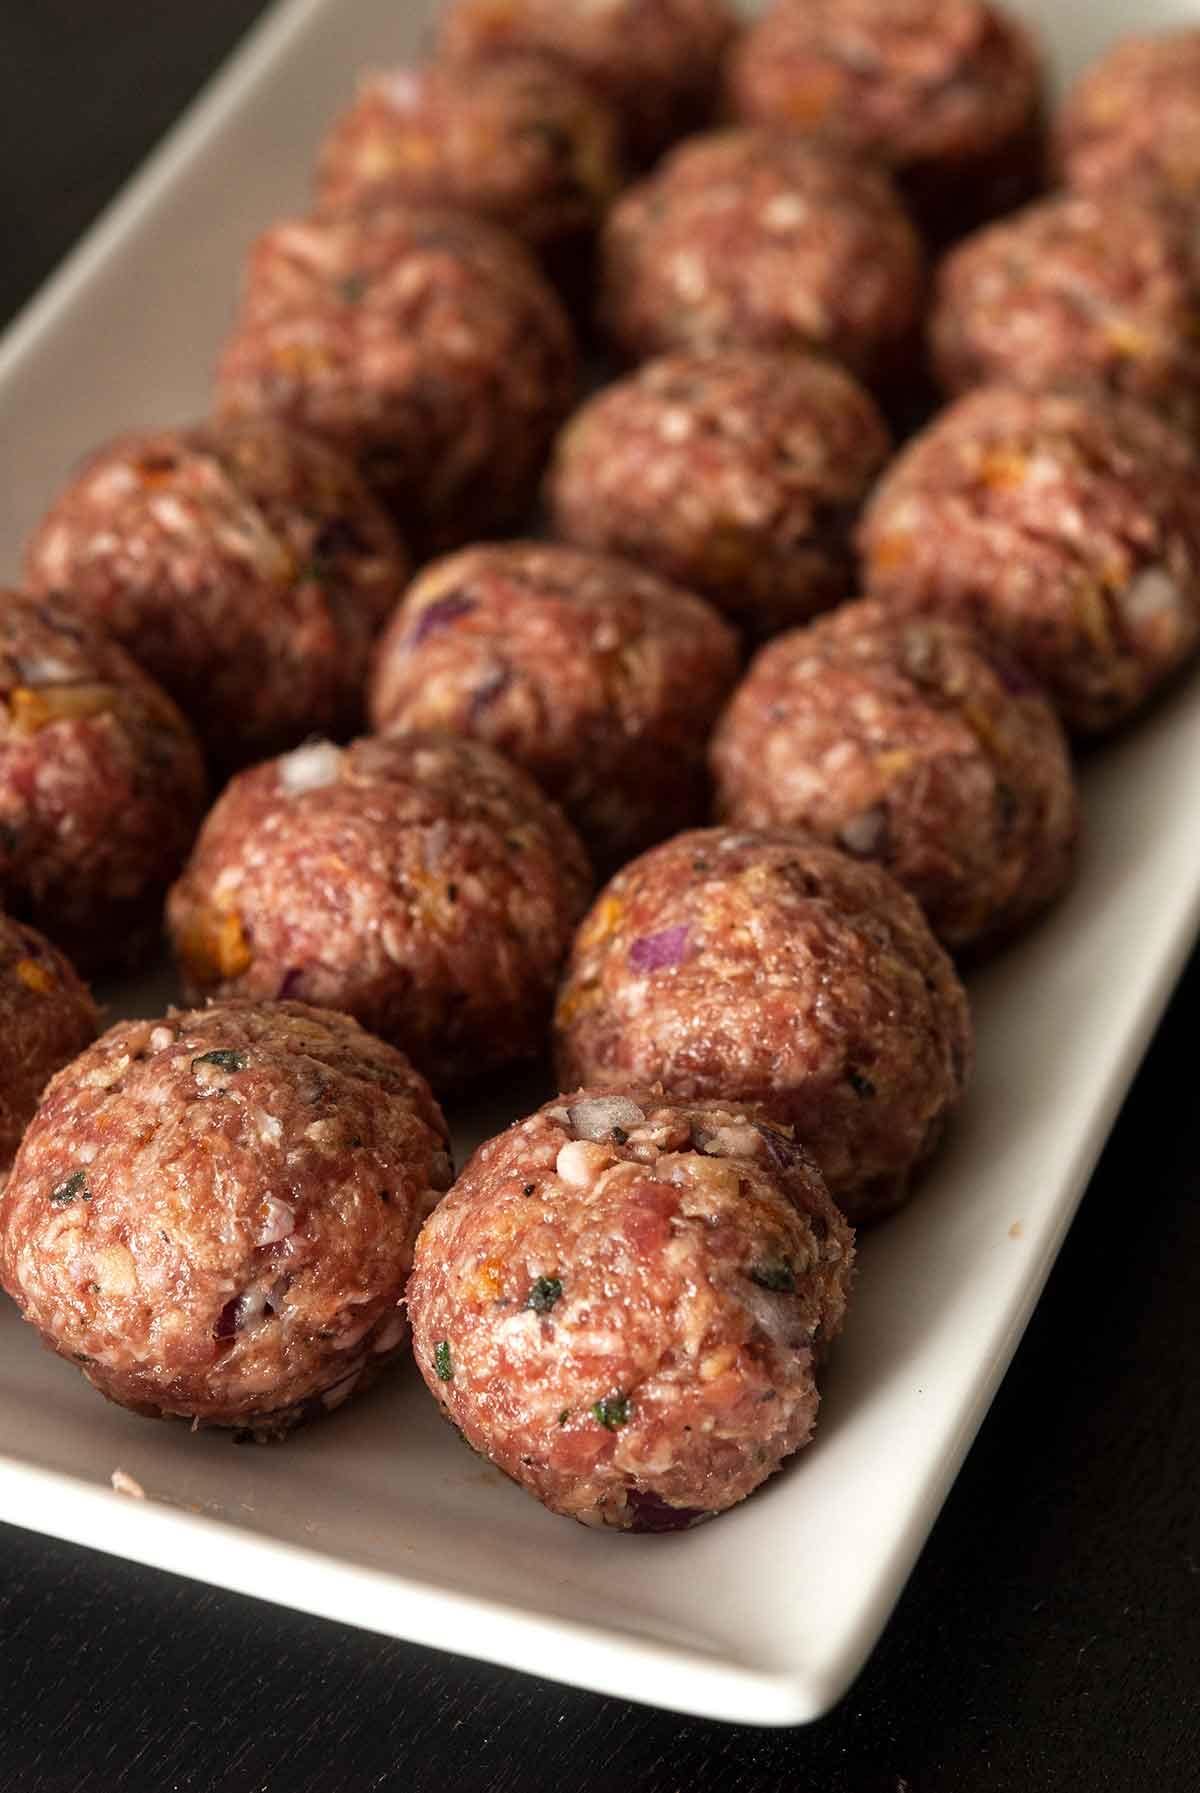 15 raw meatballs lined up on a rectangular plate.